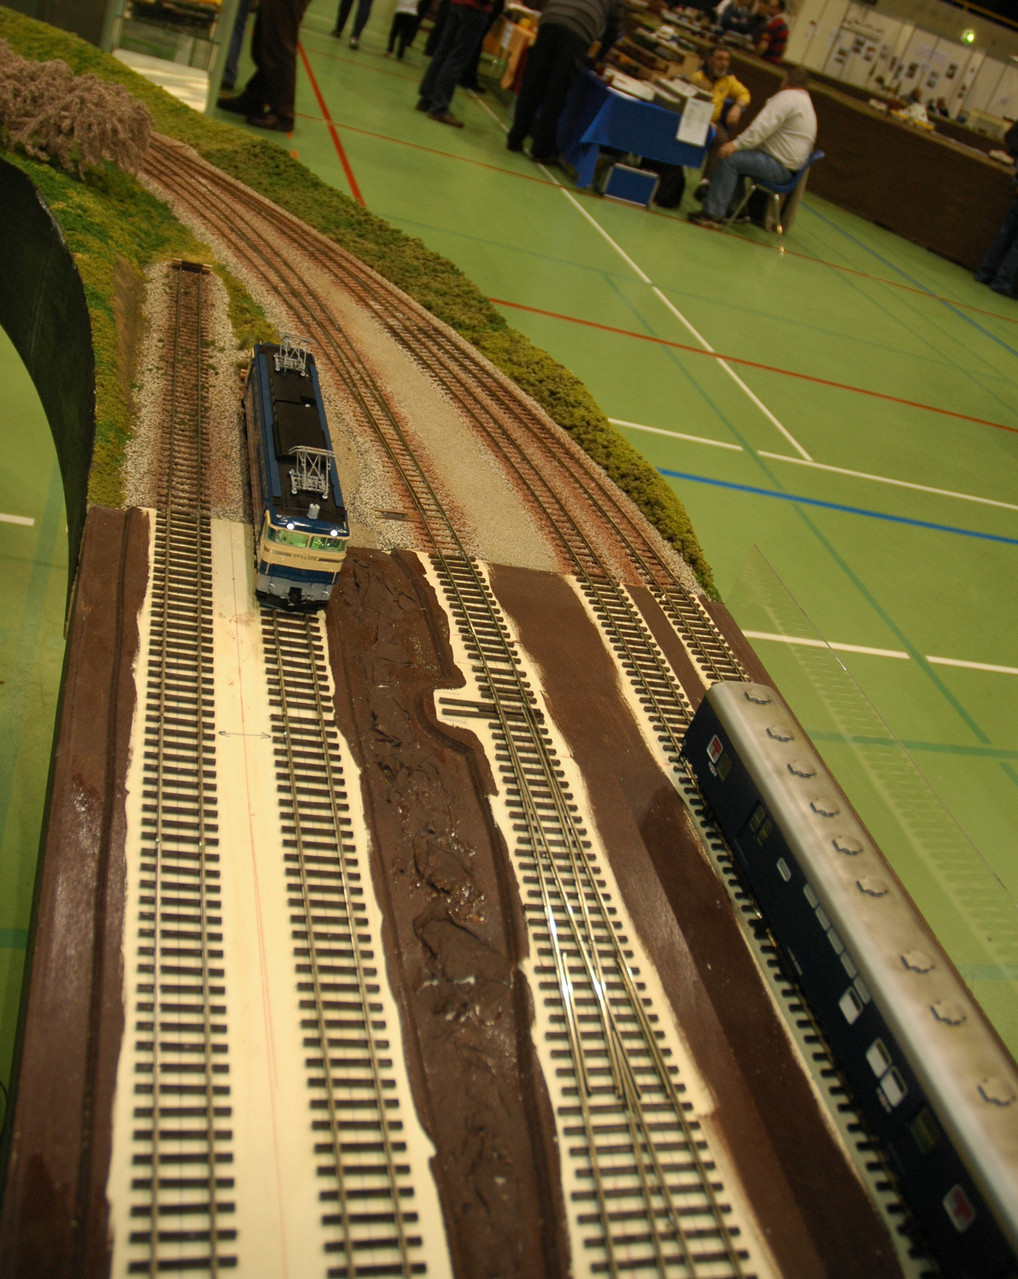 Budomura station as shown at the Olten 2013 show.